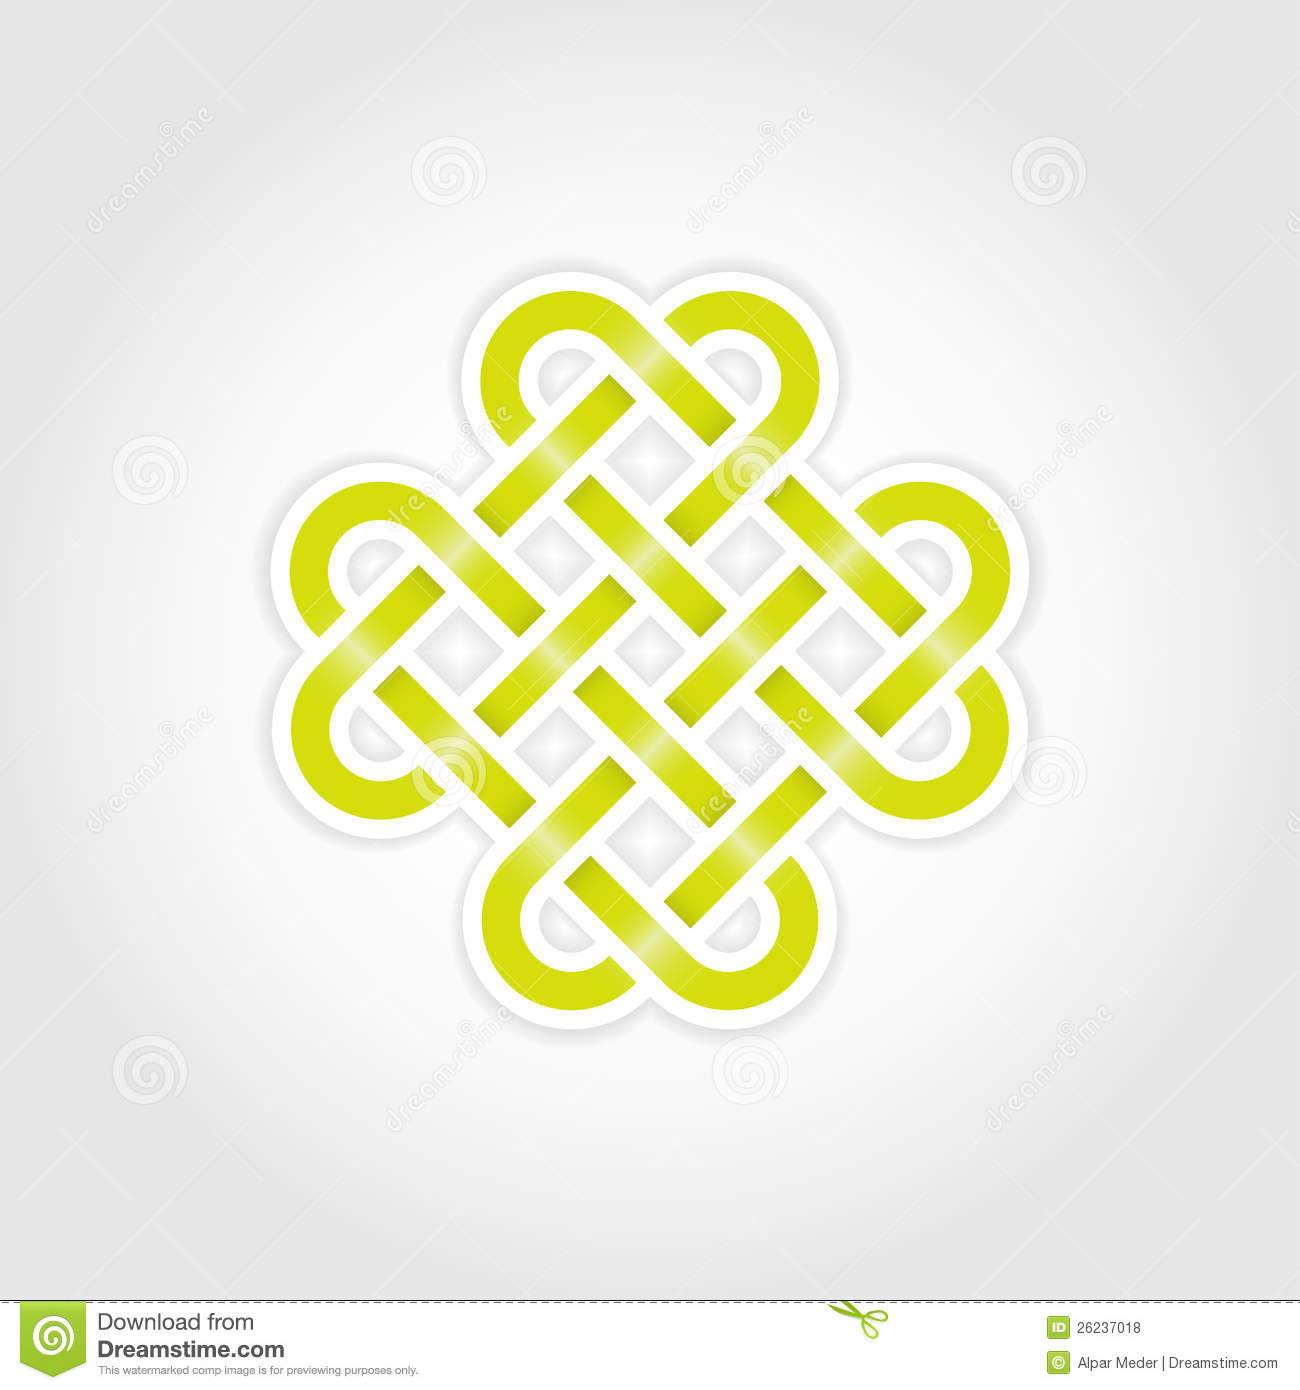 Green eternal knot concept in editable vector format.